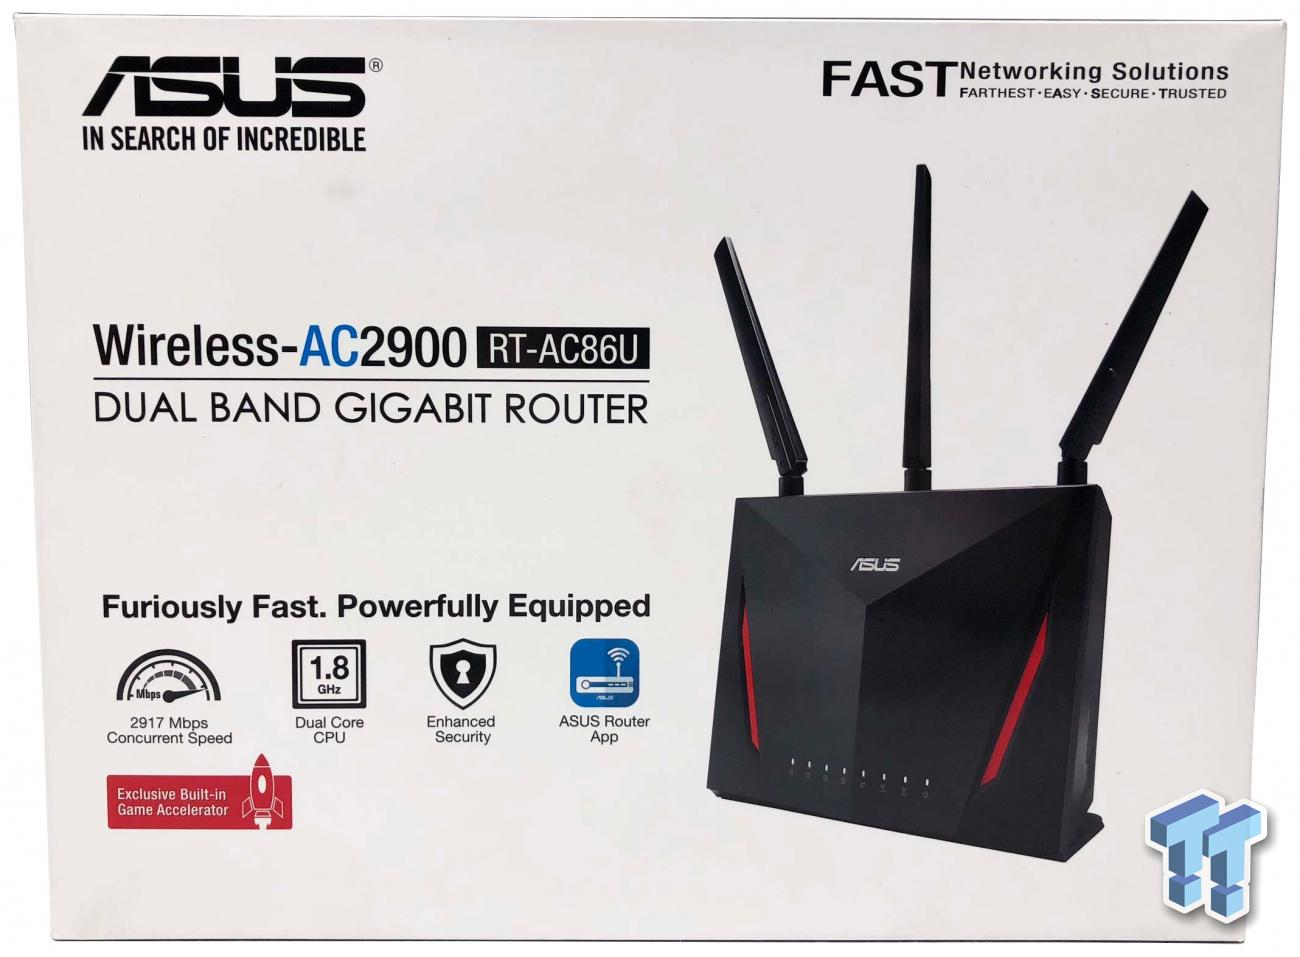 ASUS RT-AC86U AC2900 Wi-Fi Router Review